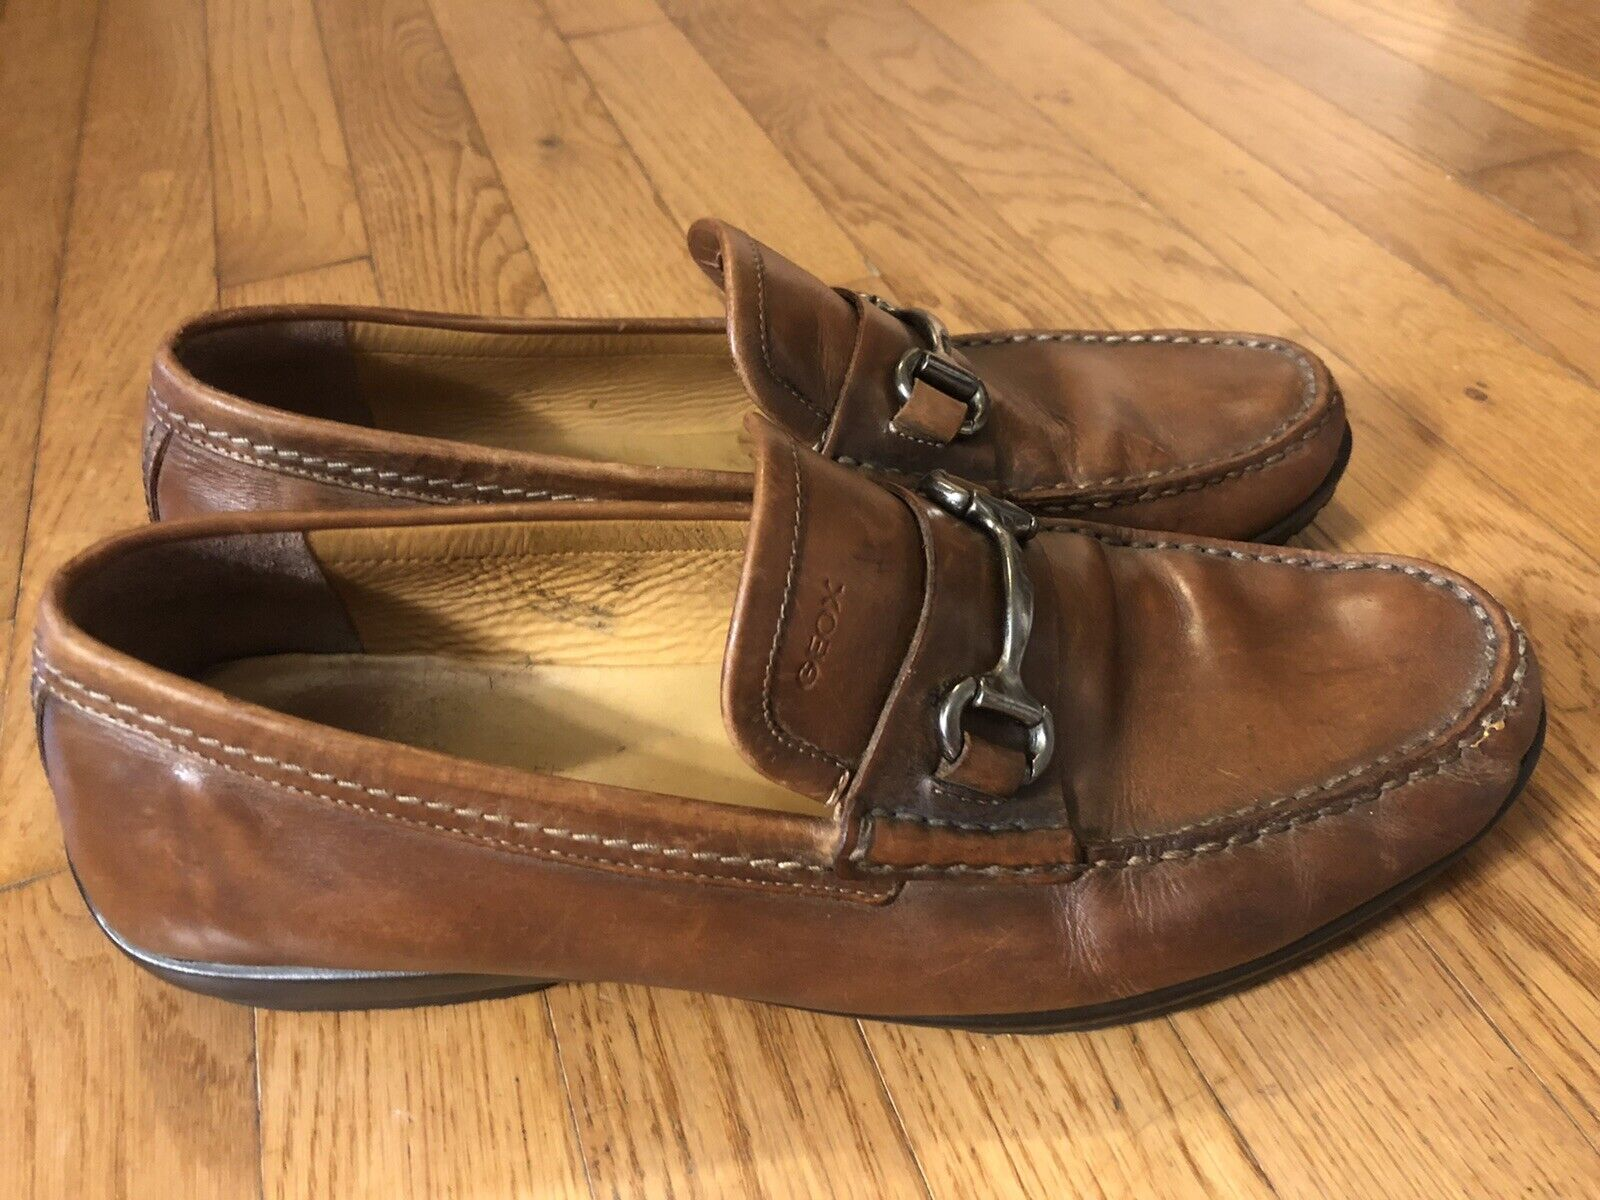 Geox Men's Driving Loafers Brown Leather Size 44 US 10.5 Slip On Classic